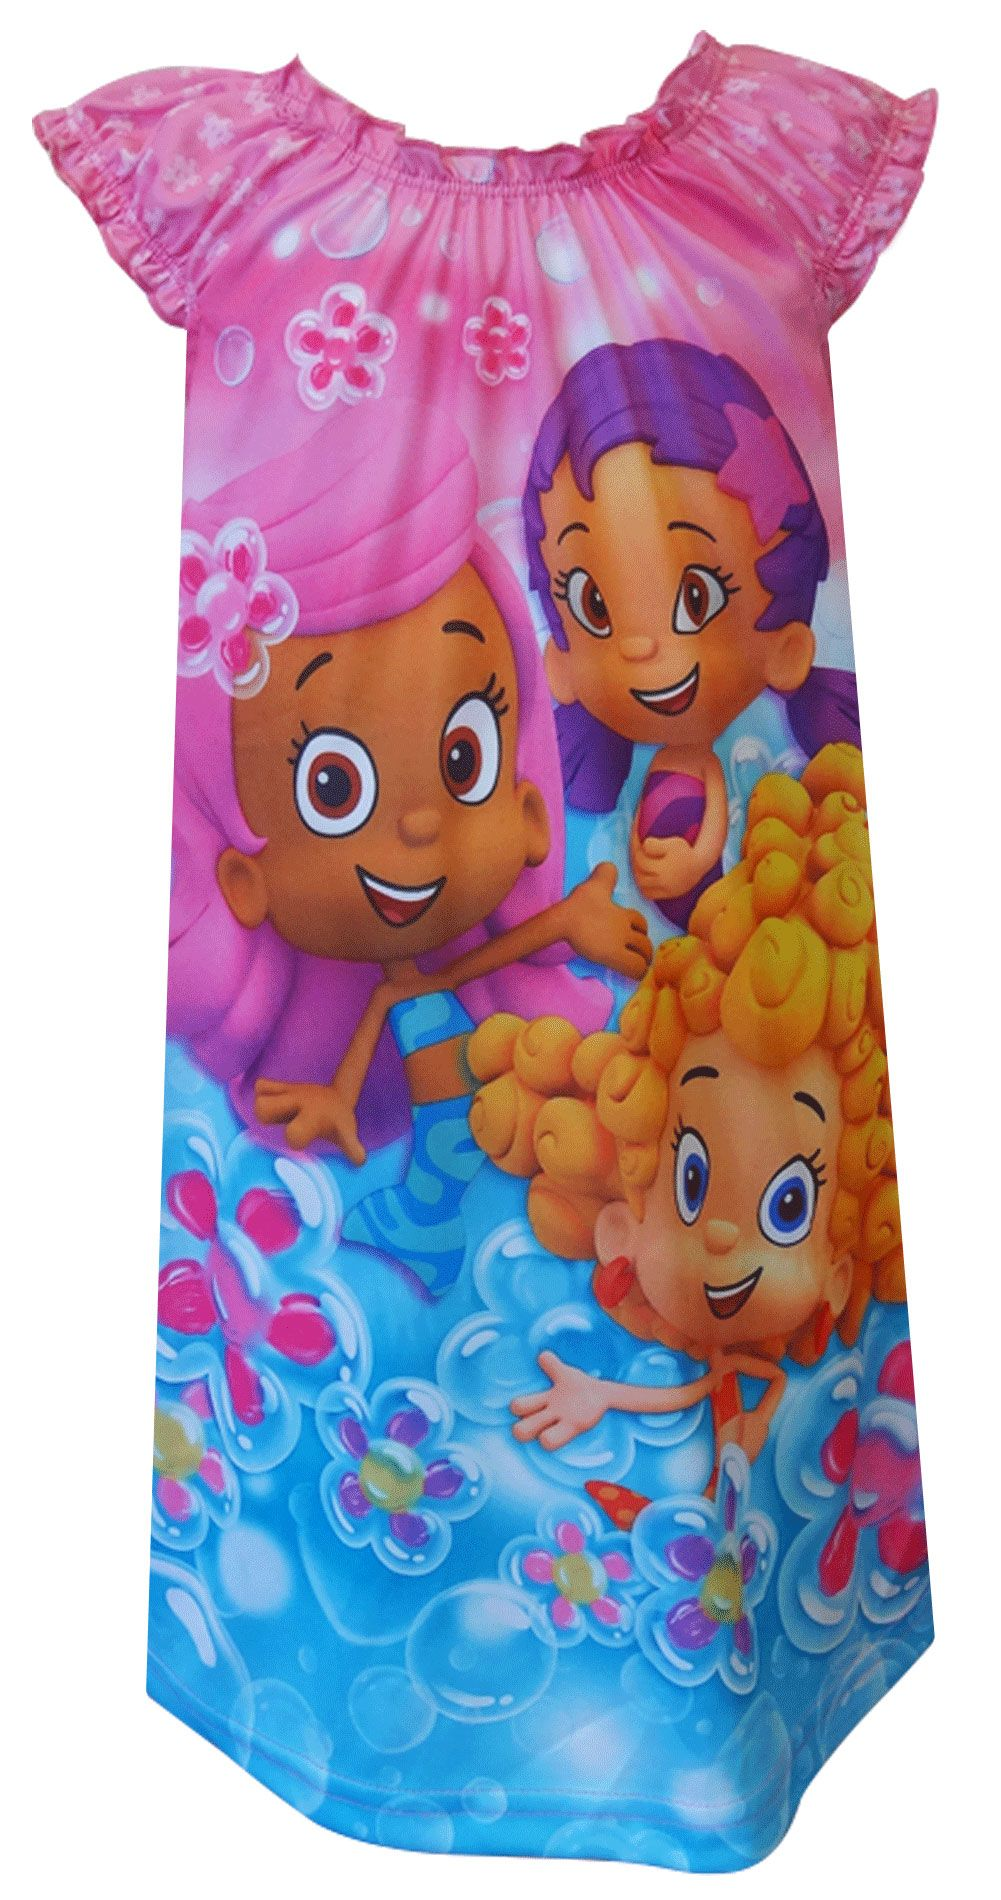 609a1ee783 Nickelodeon Bubble Guppies Pink Toddler Nightgown Time for some fun! These  flame resistant nightgowns for toddler girls feature.